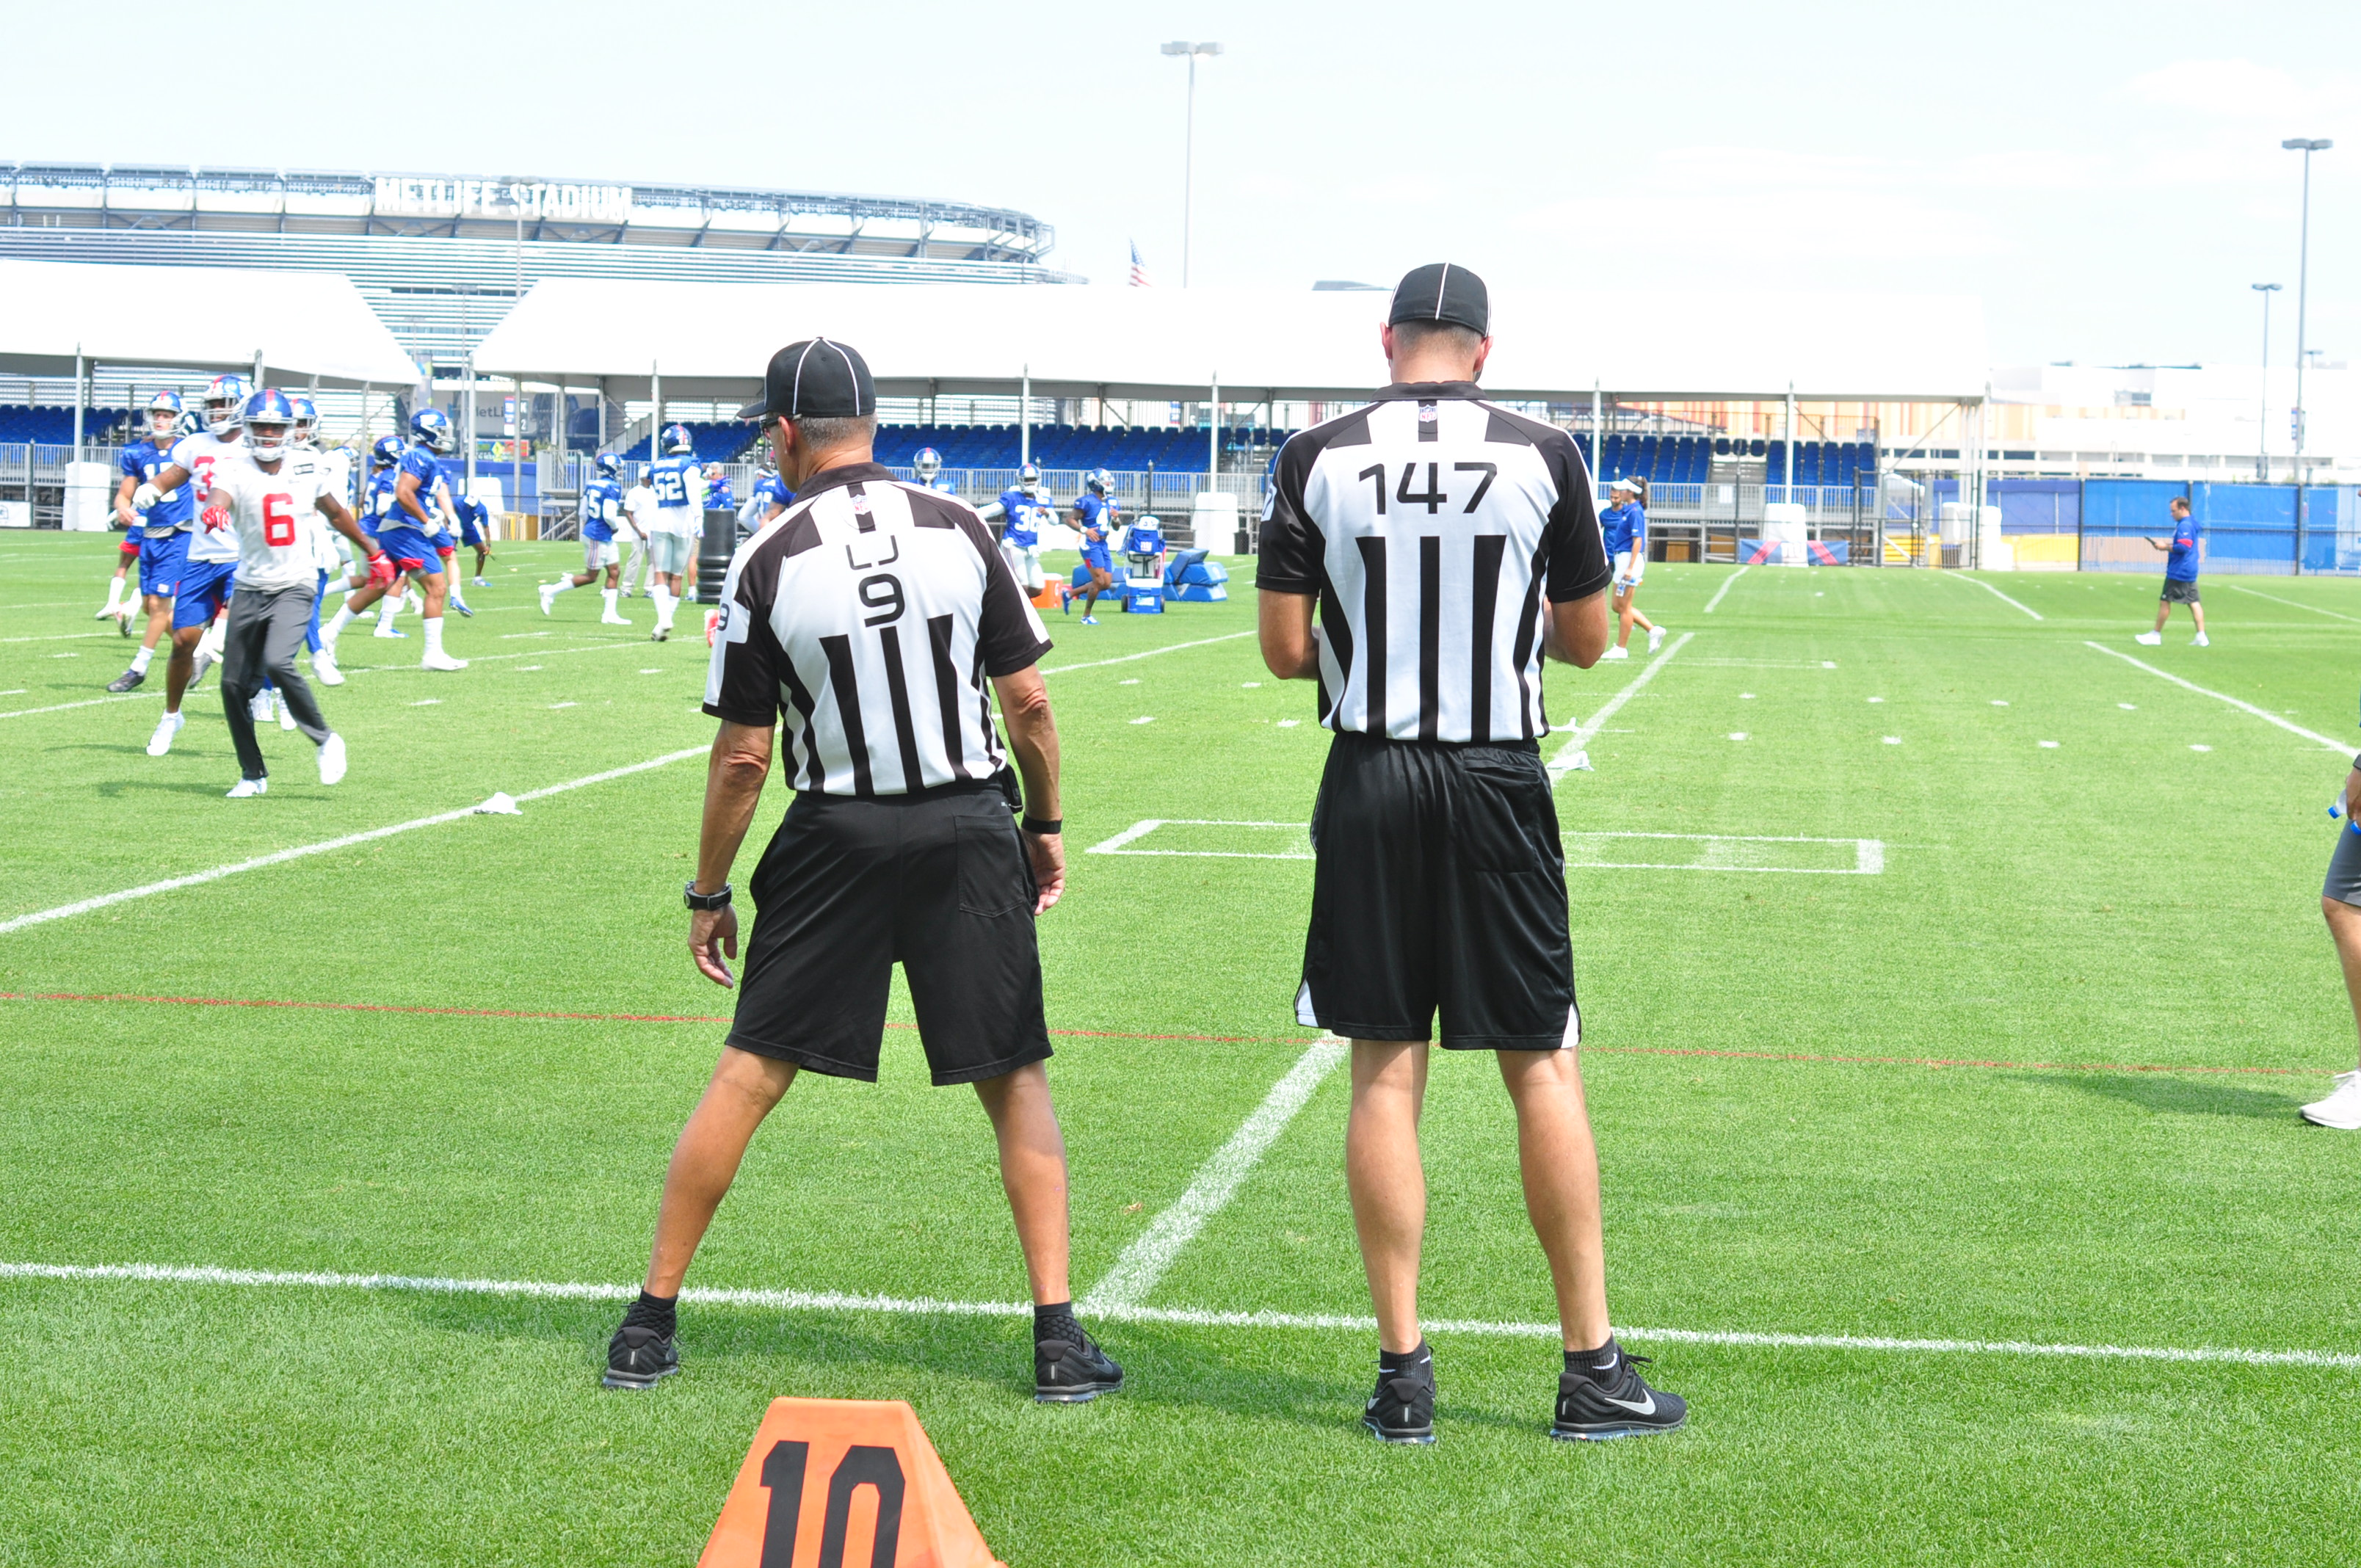 42 officials taking part in this season's Officiating Development Program